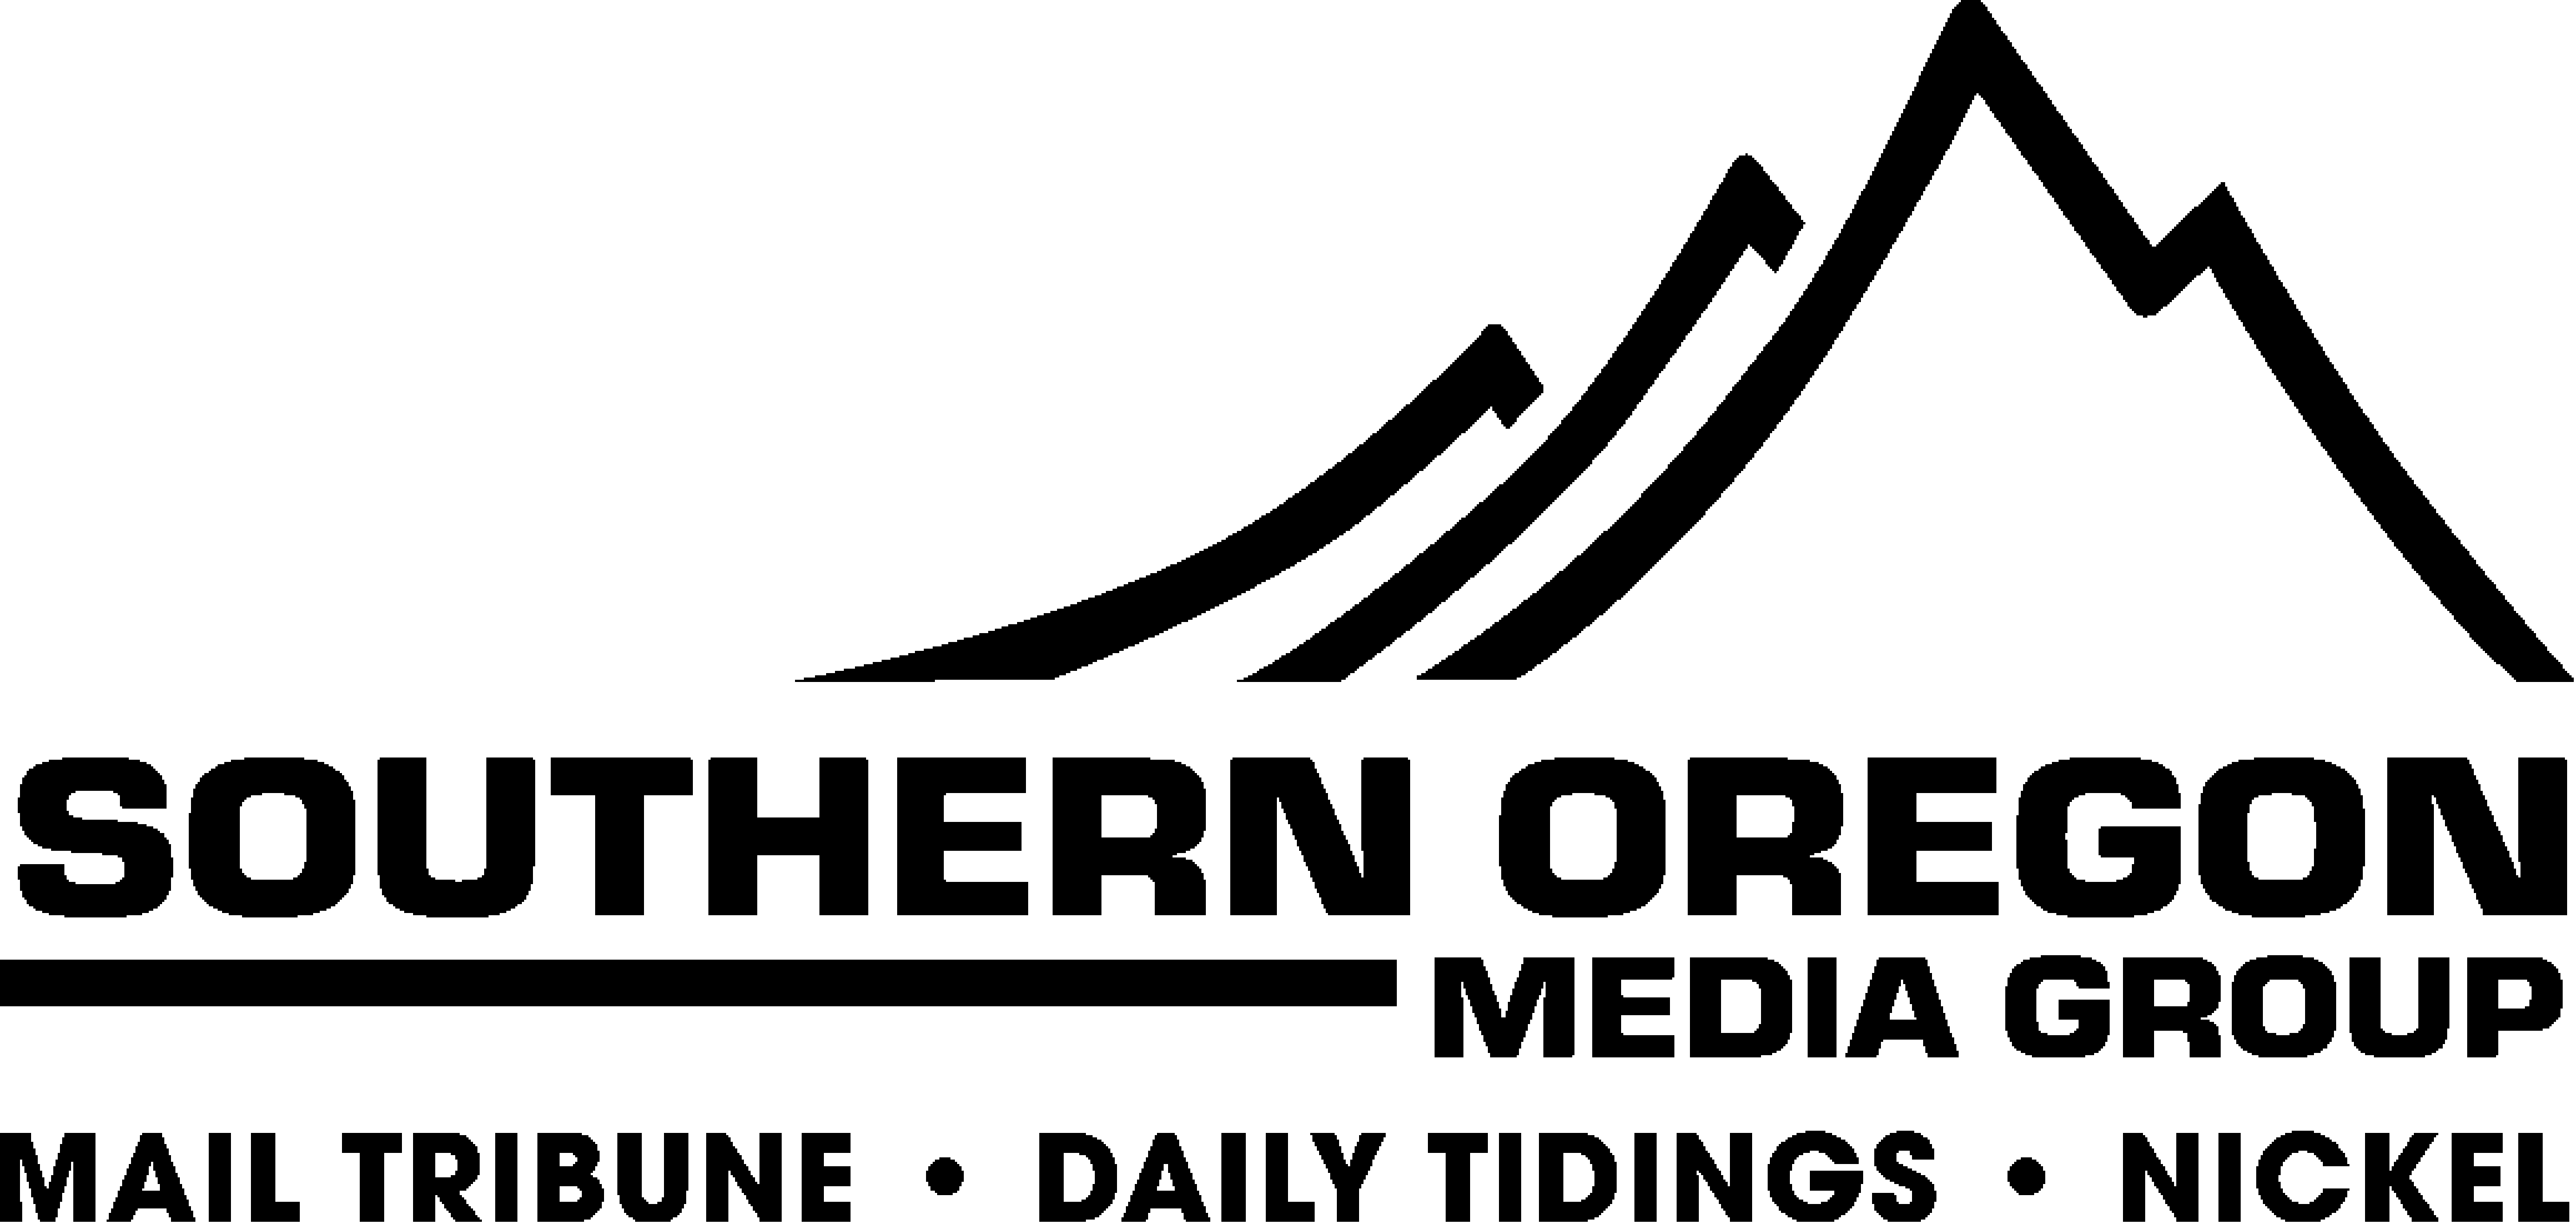 Southern Oregon Media Group